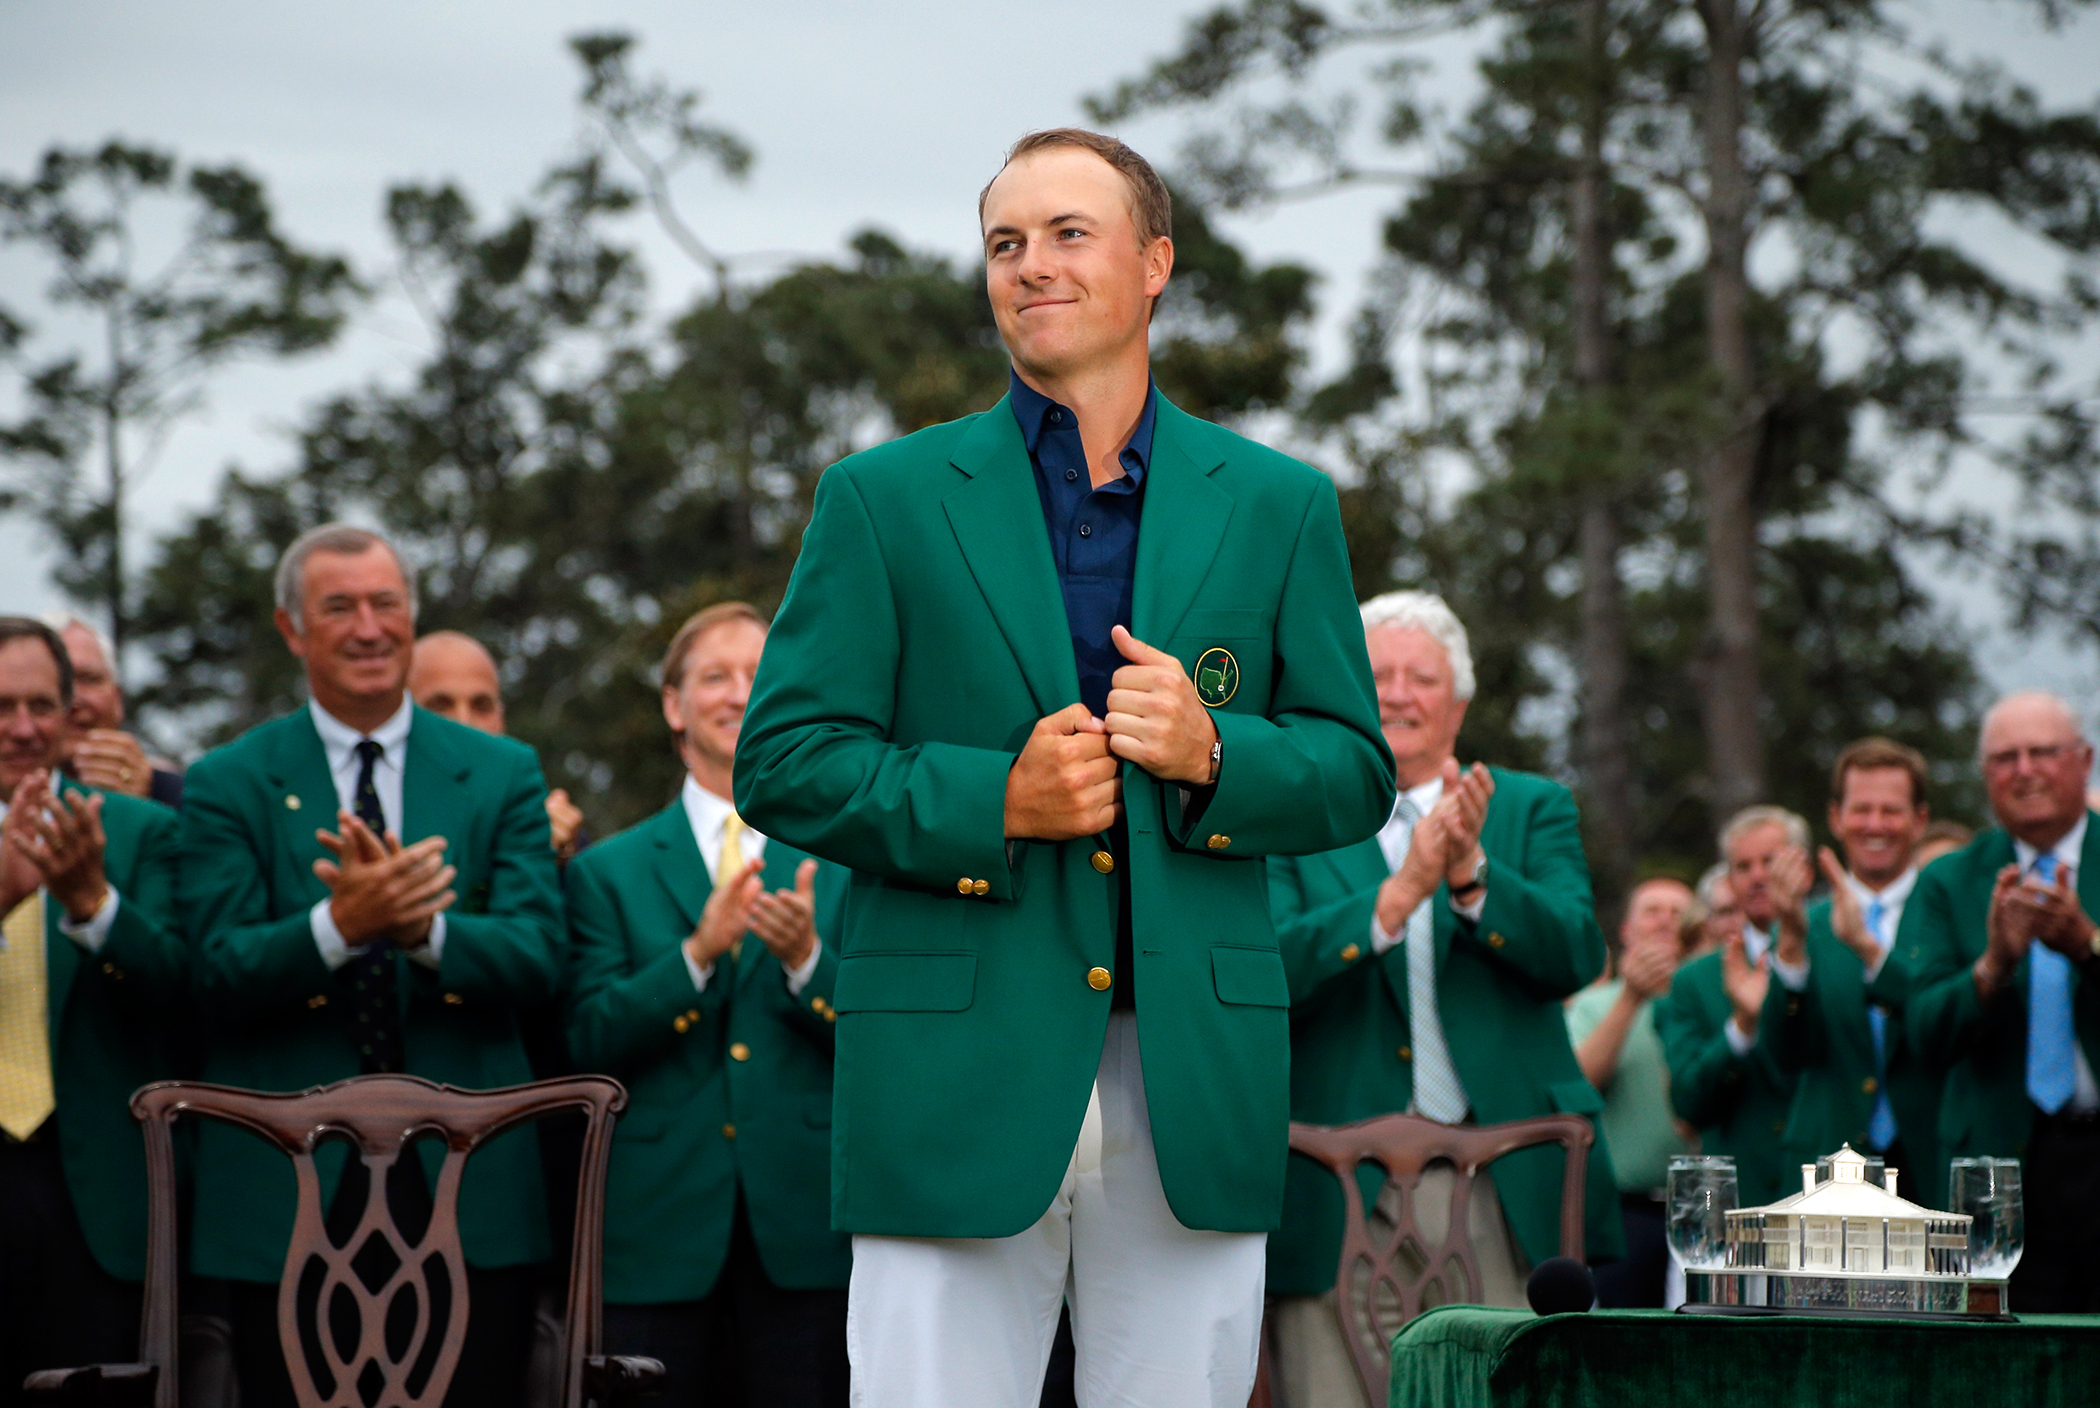 Jordan Spieth of the U.S. grins as he wears his Champion's green jacket on the putting green after winning the Masters golf tournament at the Augusta National Golf Course in Augusta, Georgia April 12, 2015.